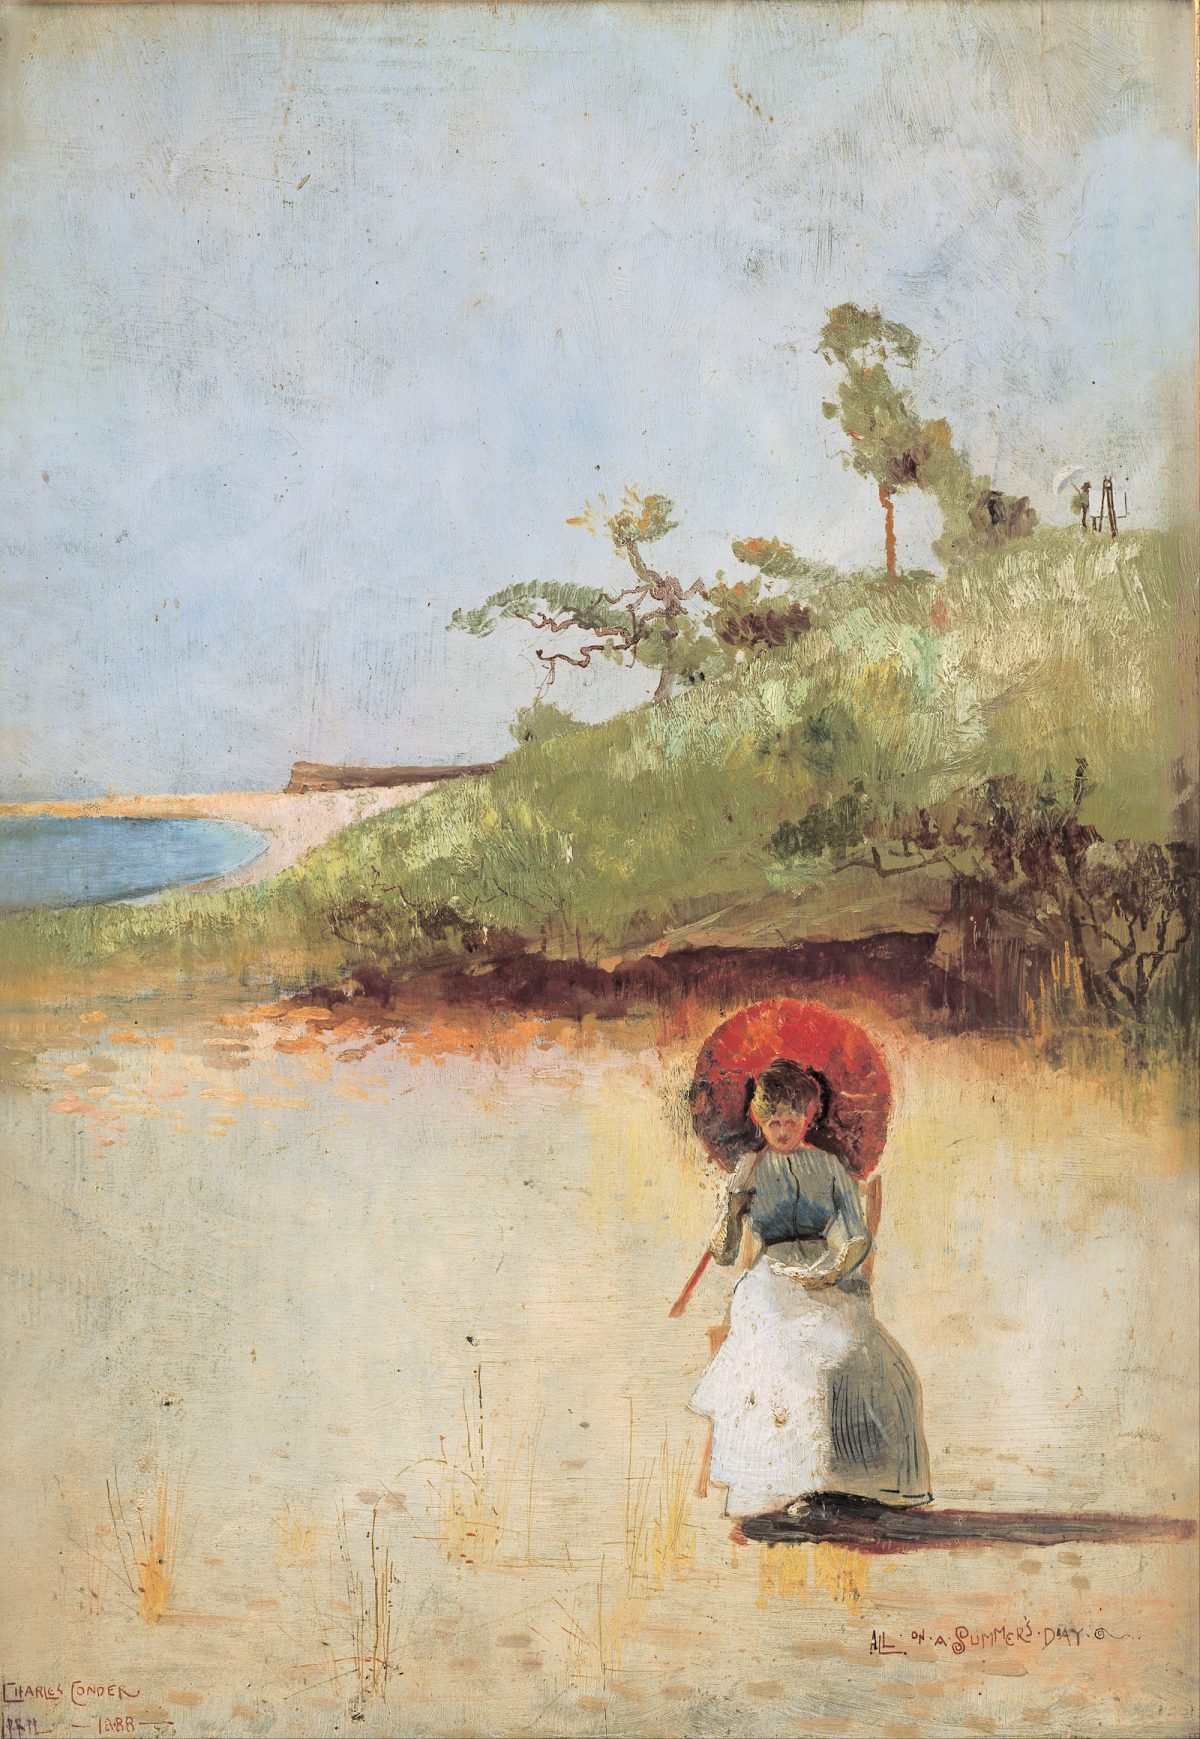 Charles Conder, painting, 1800s